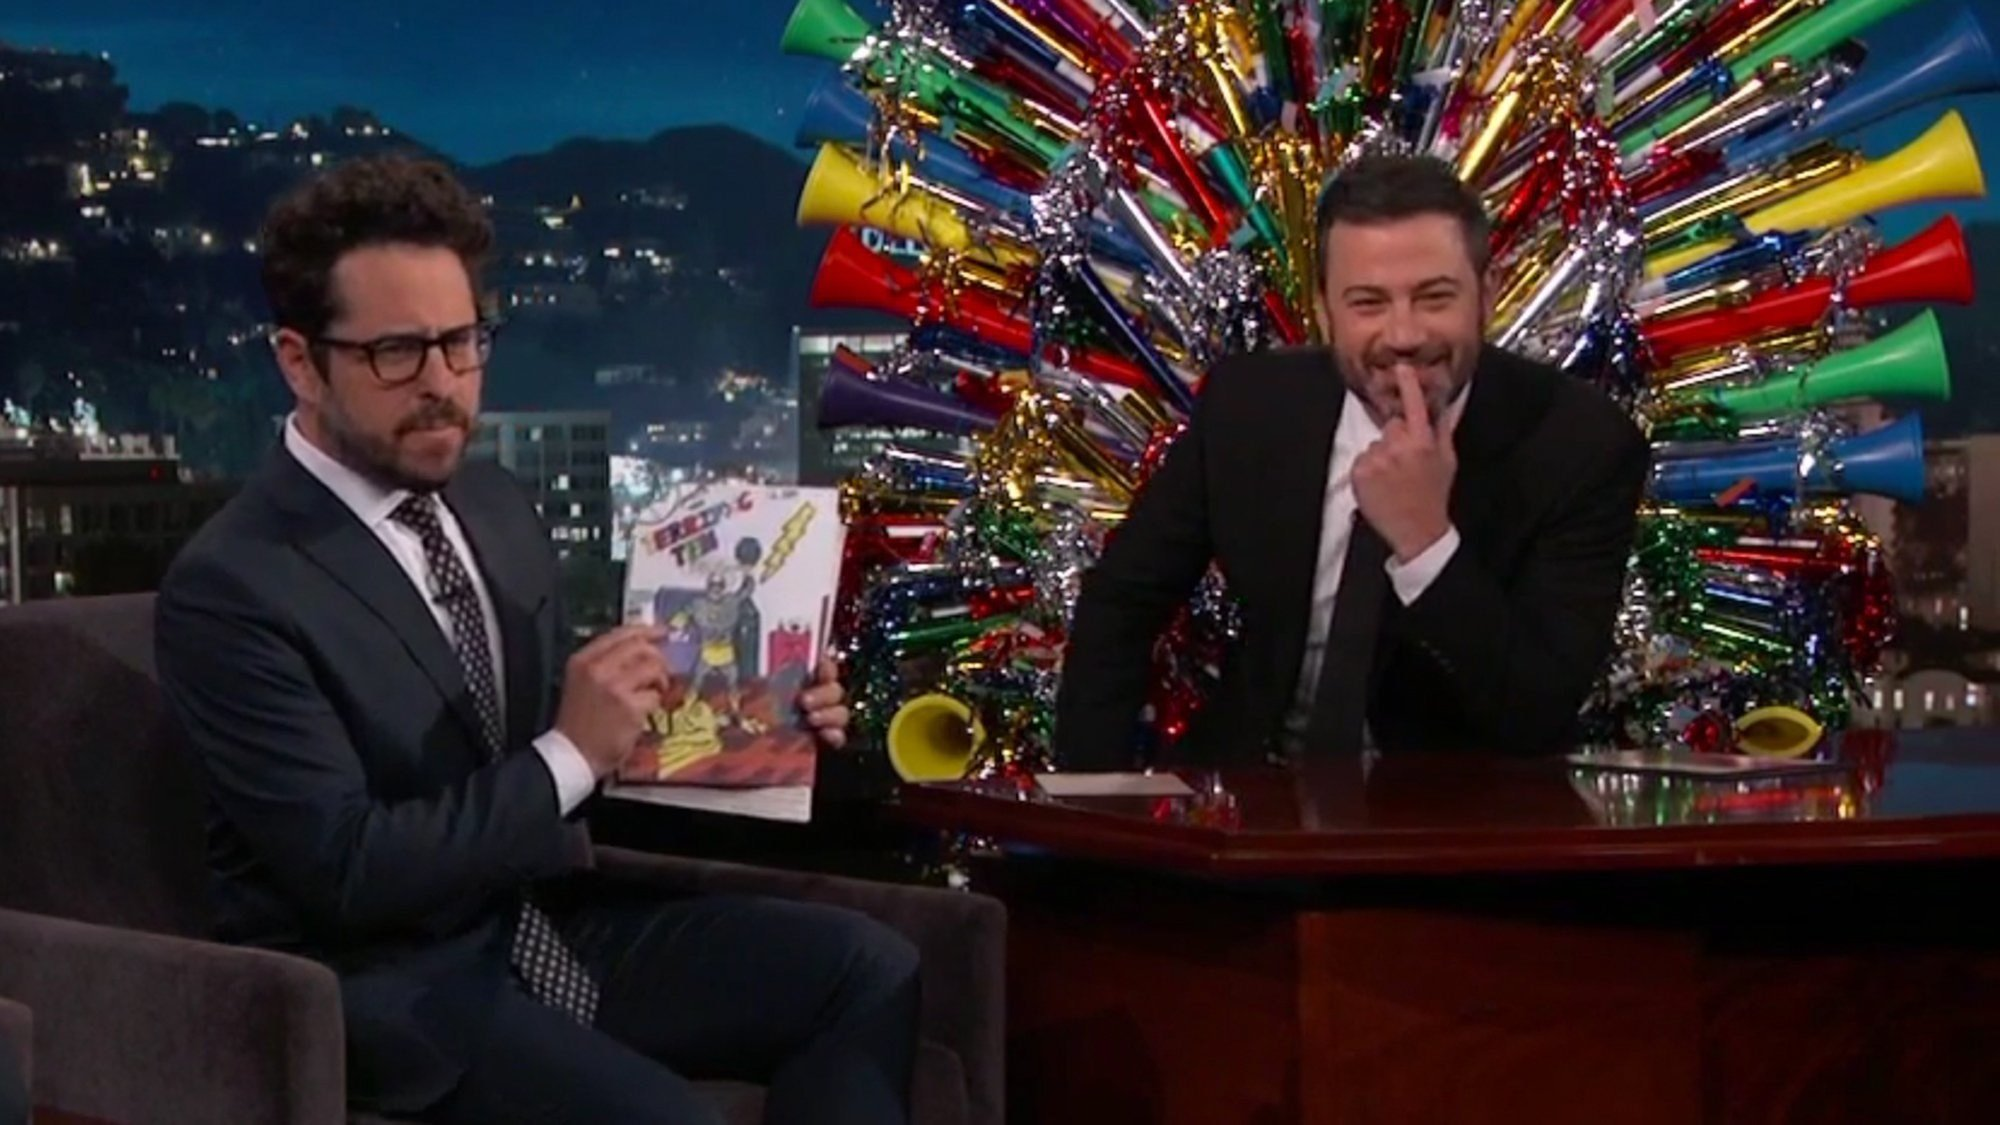 J.J. Abrams gave Jimmy Kimmel a throwback birthday gift for his 50th birthday celebration.